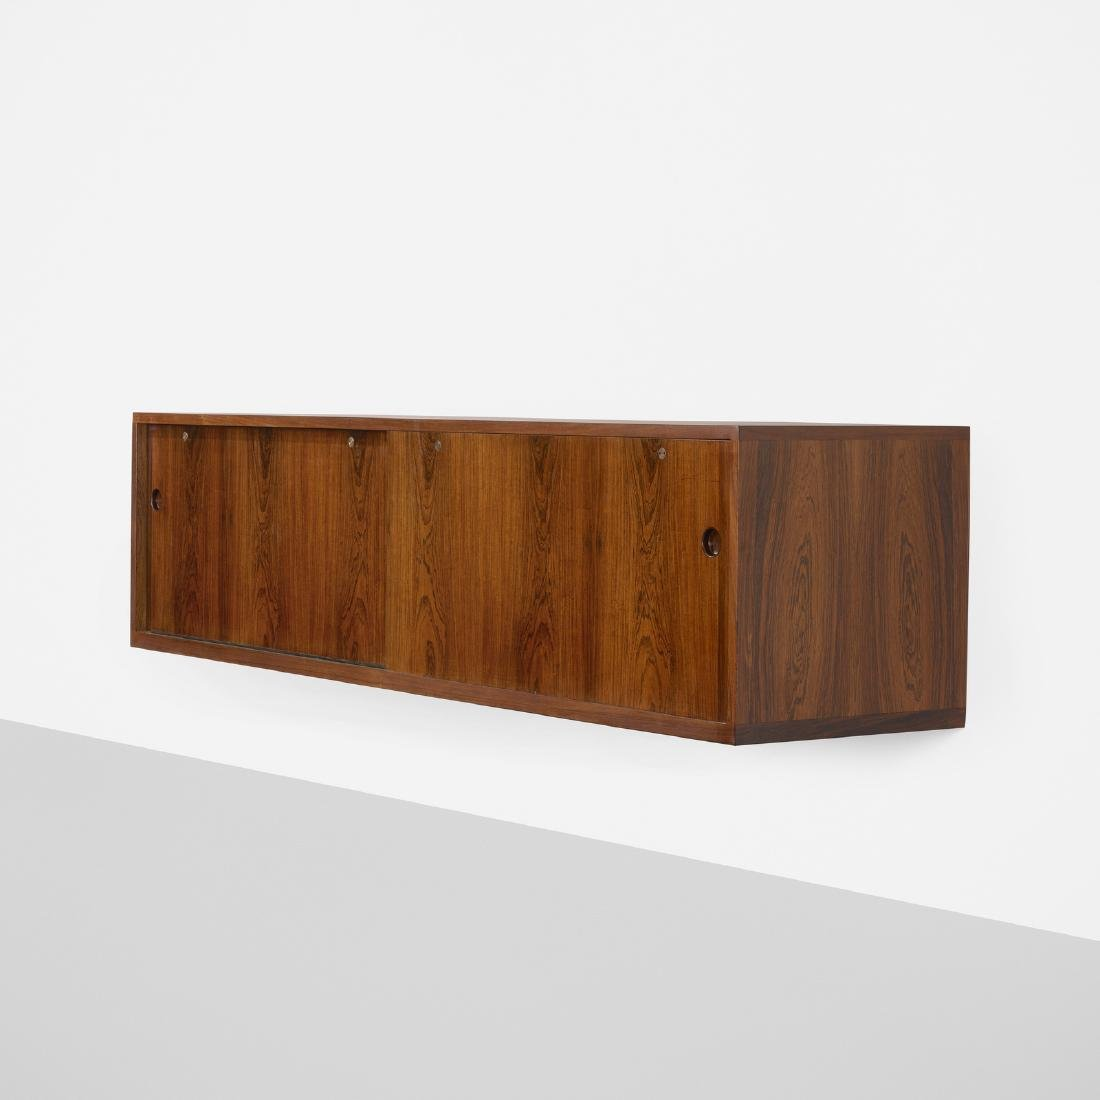 Hans J. Wegner, custom wall-mounted cabinet